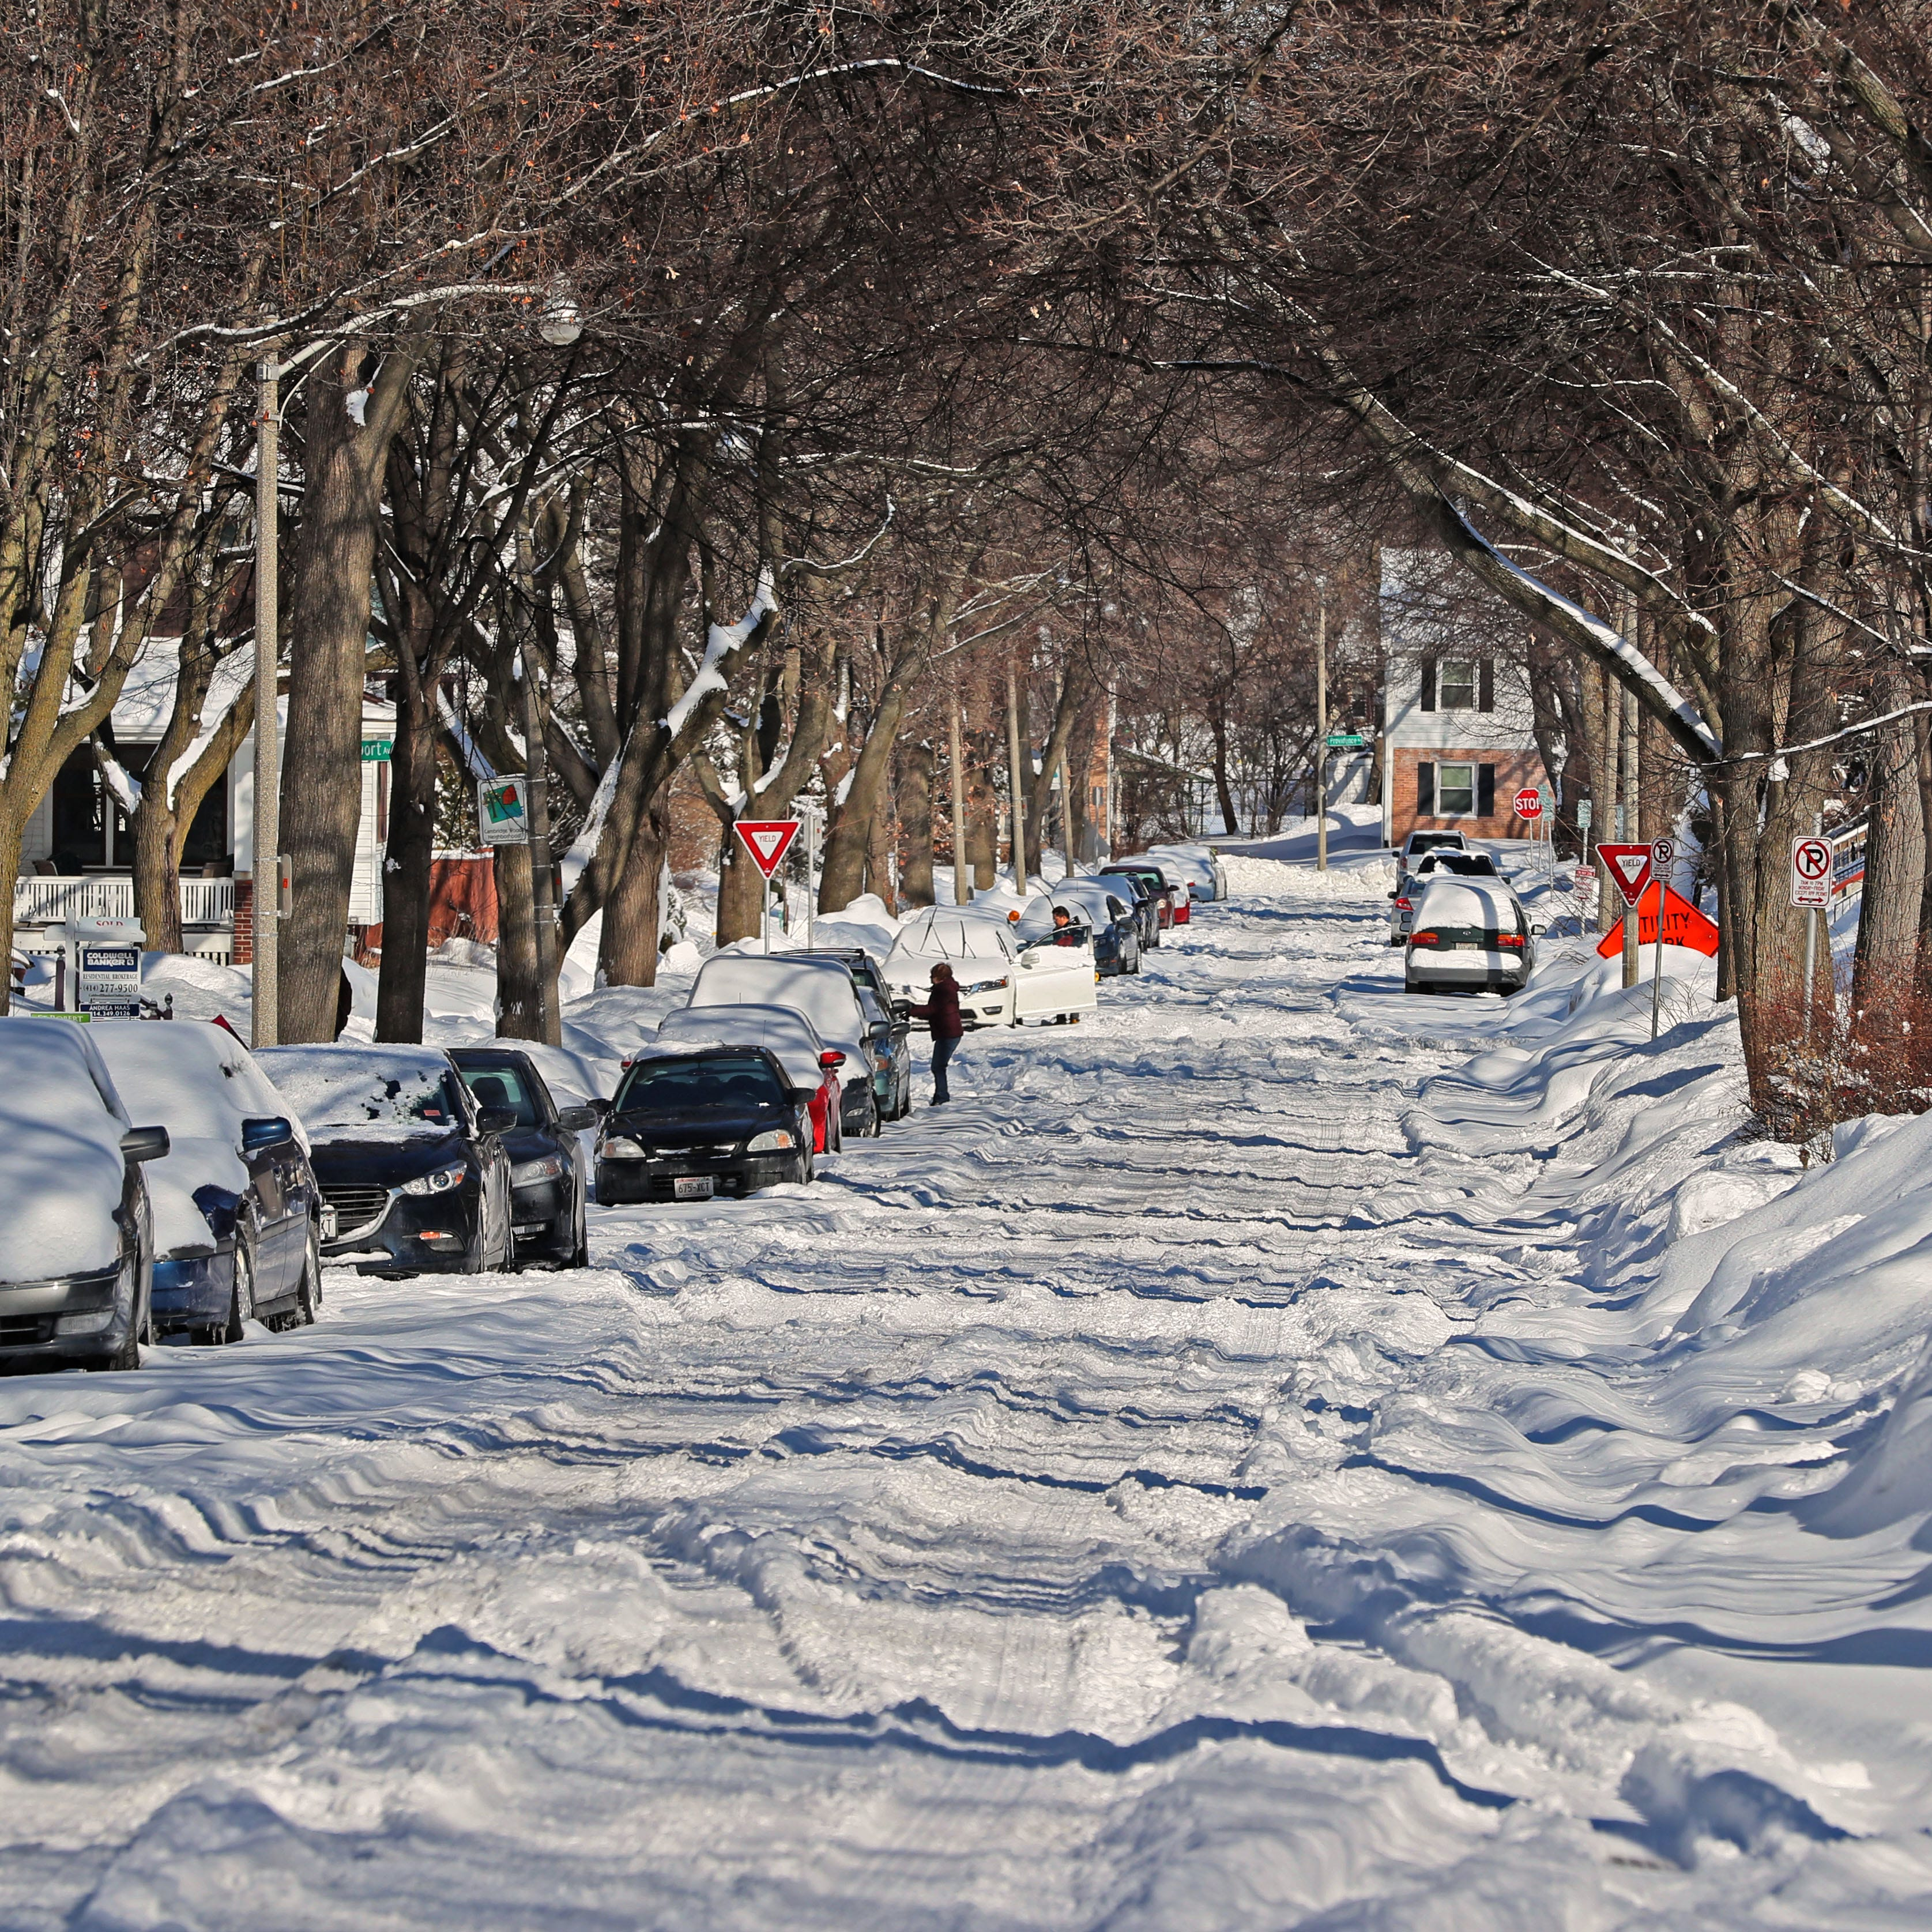 Yep, it's been a crazy winter, and it's likely to stay cold and snowy for a while